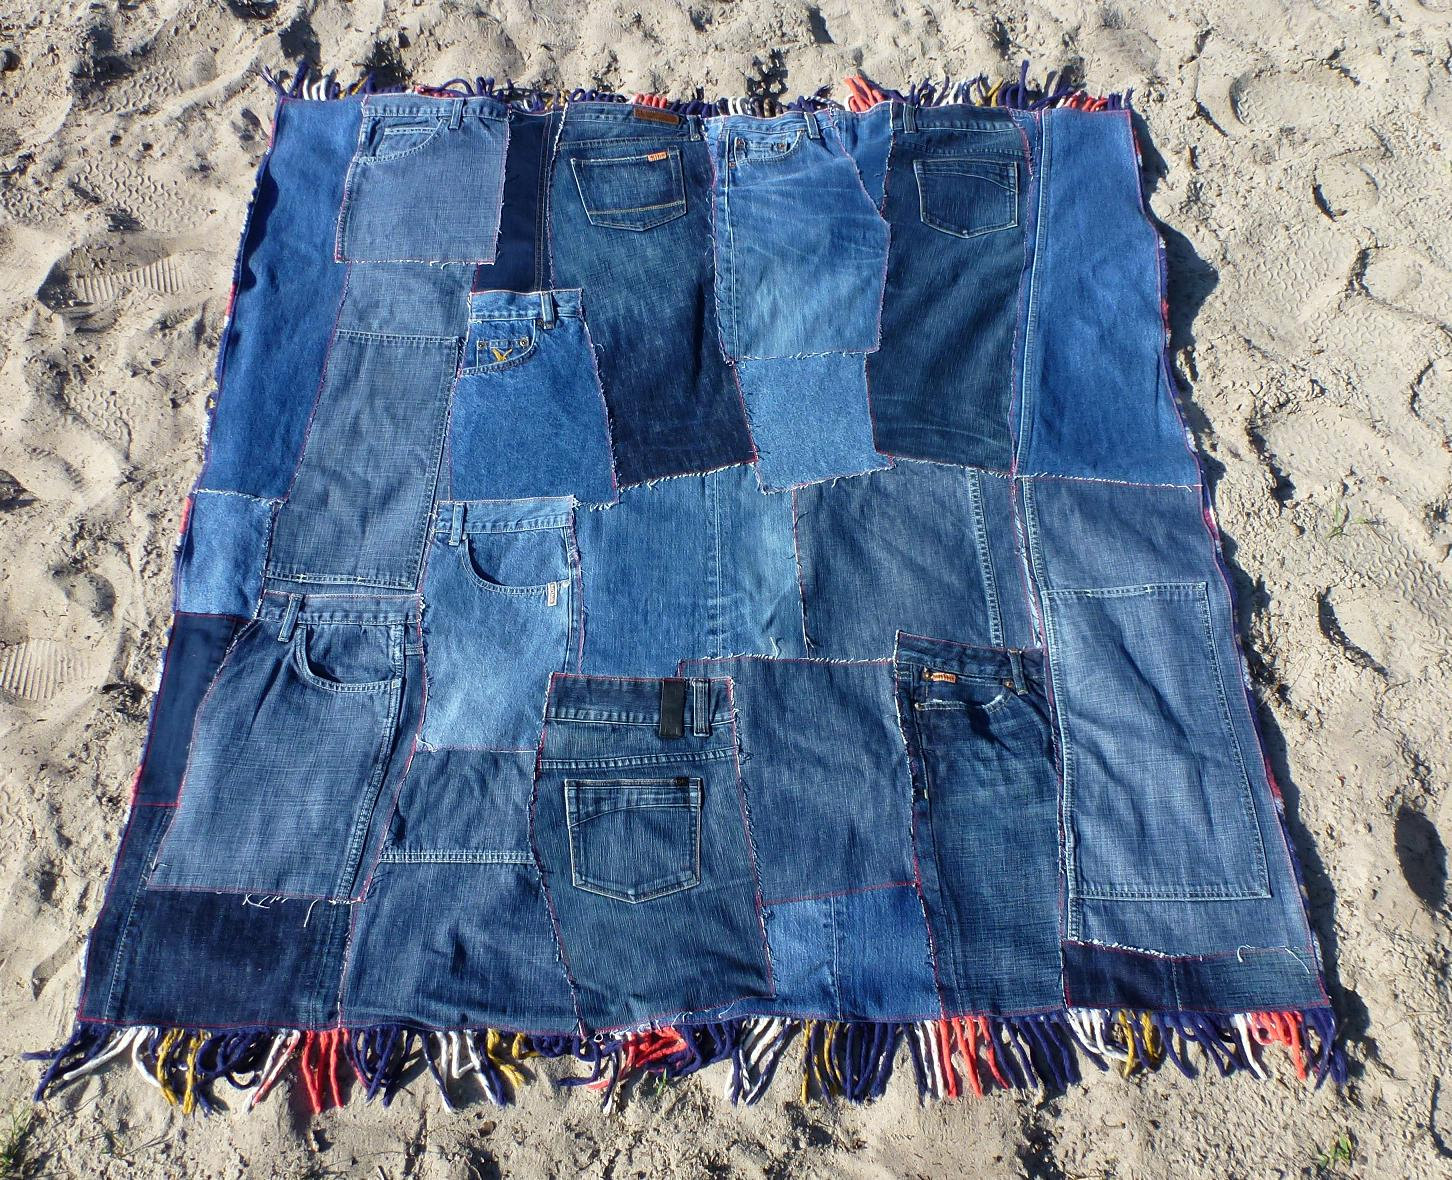 Hondenspeeltjes Maken Patchwork Denim Quilt Plaid Picnic Blanket With Fringe Eco